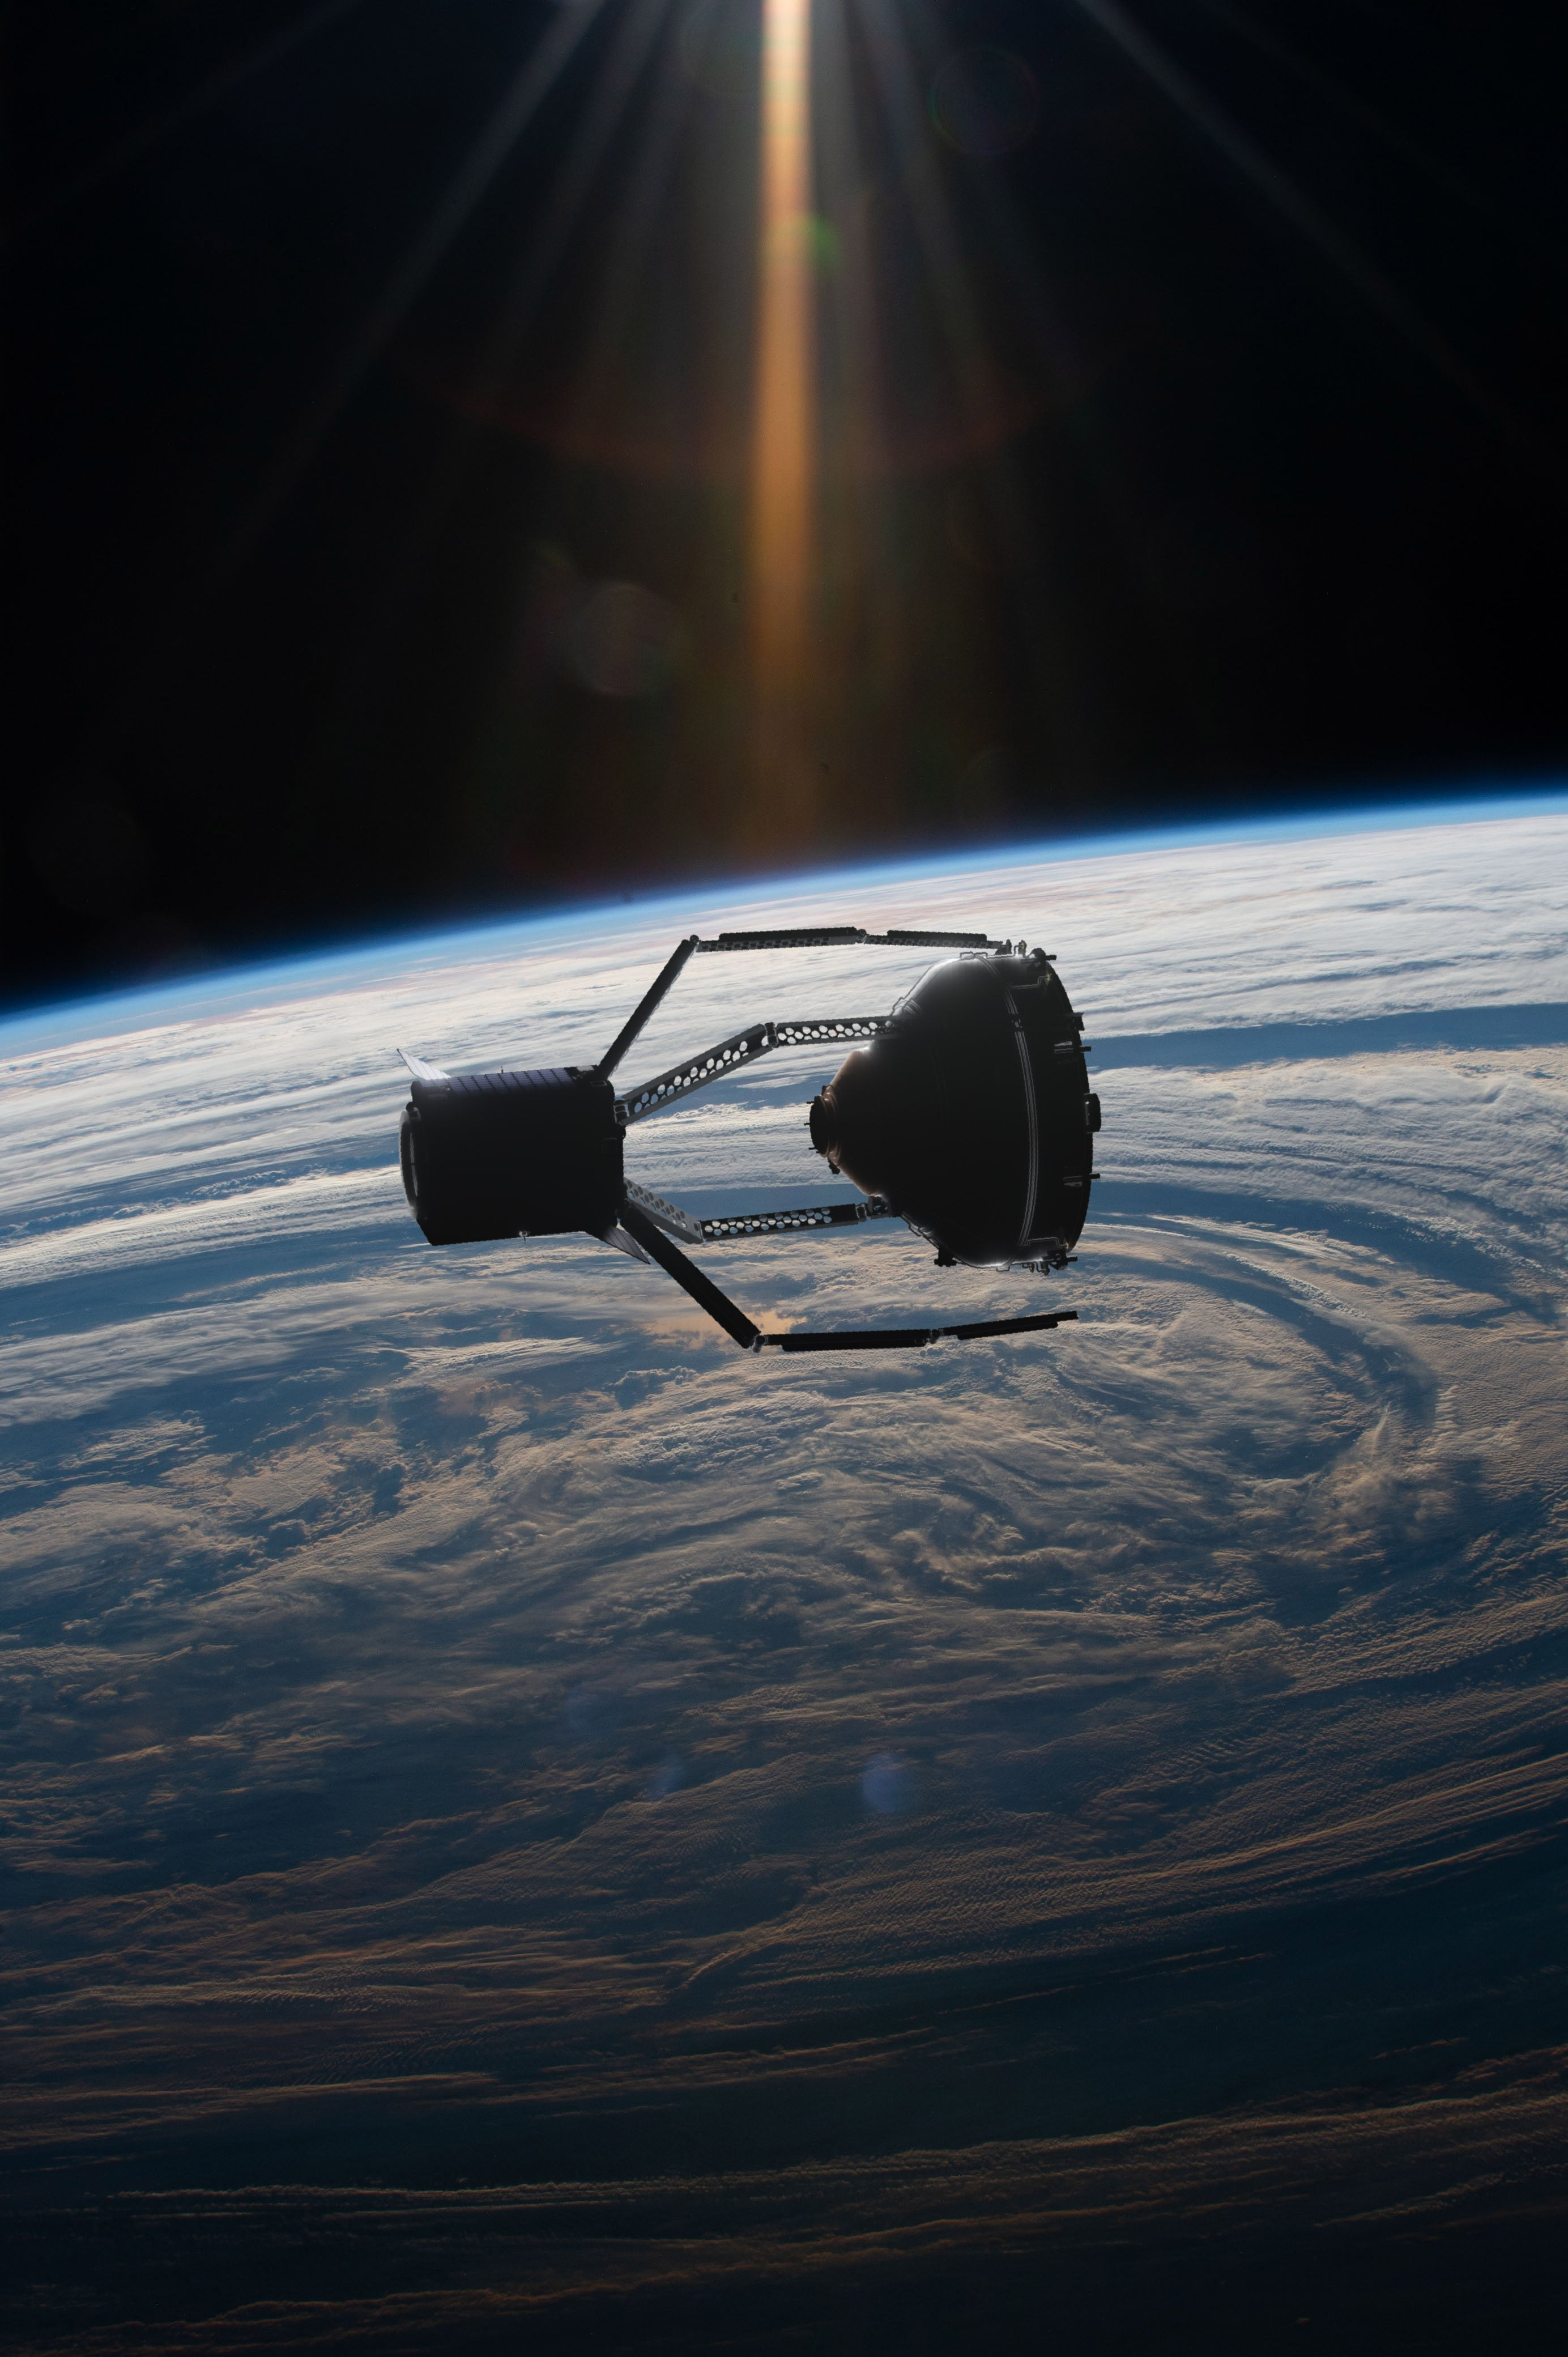 Giant claw will be sent to space to collect debris from past missions - The Independent